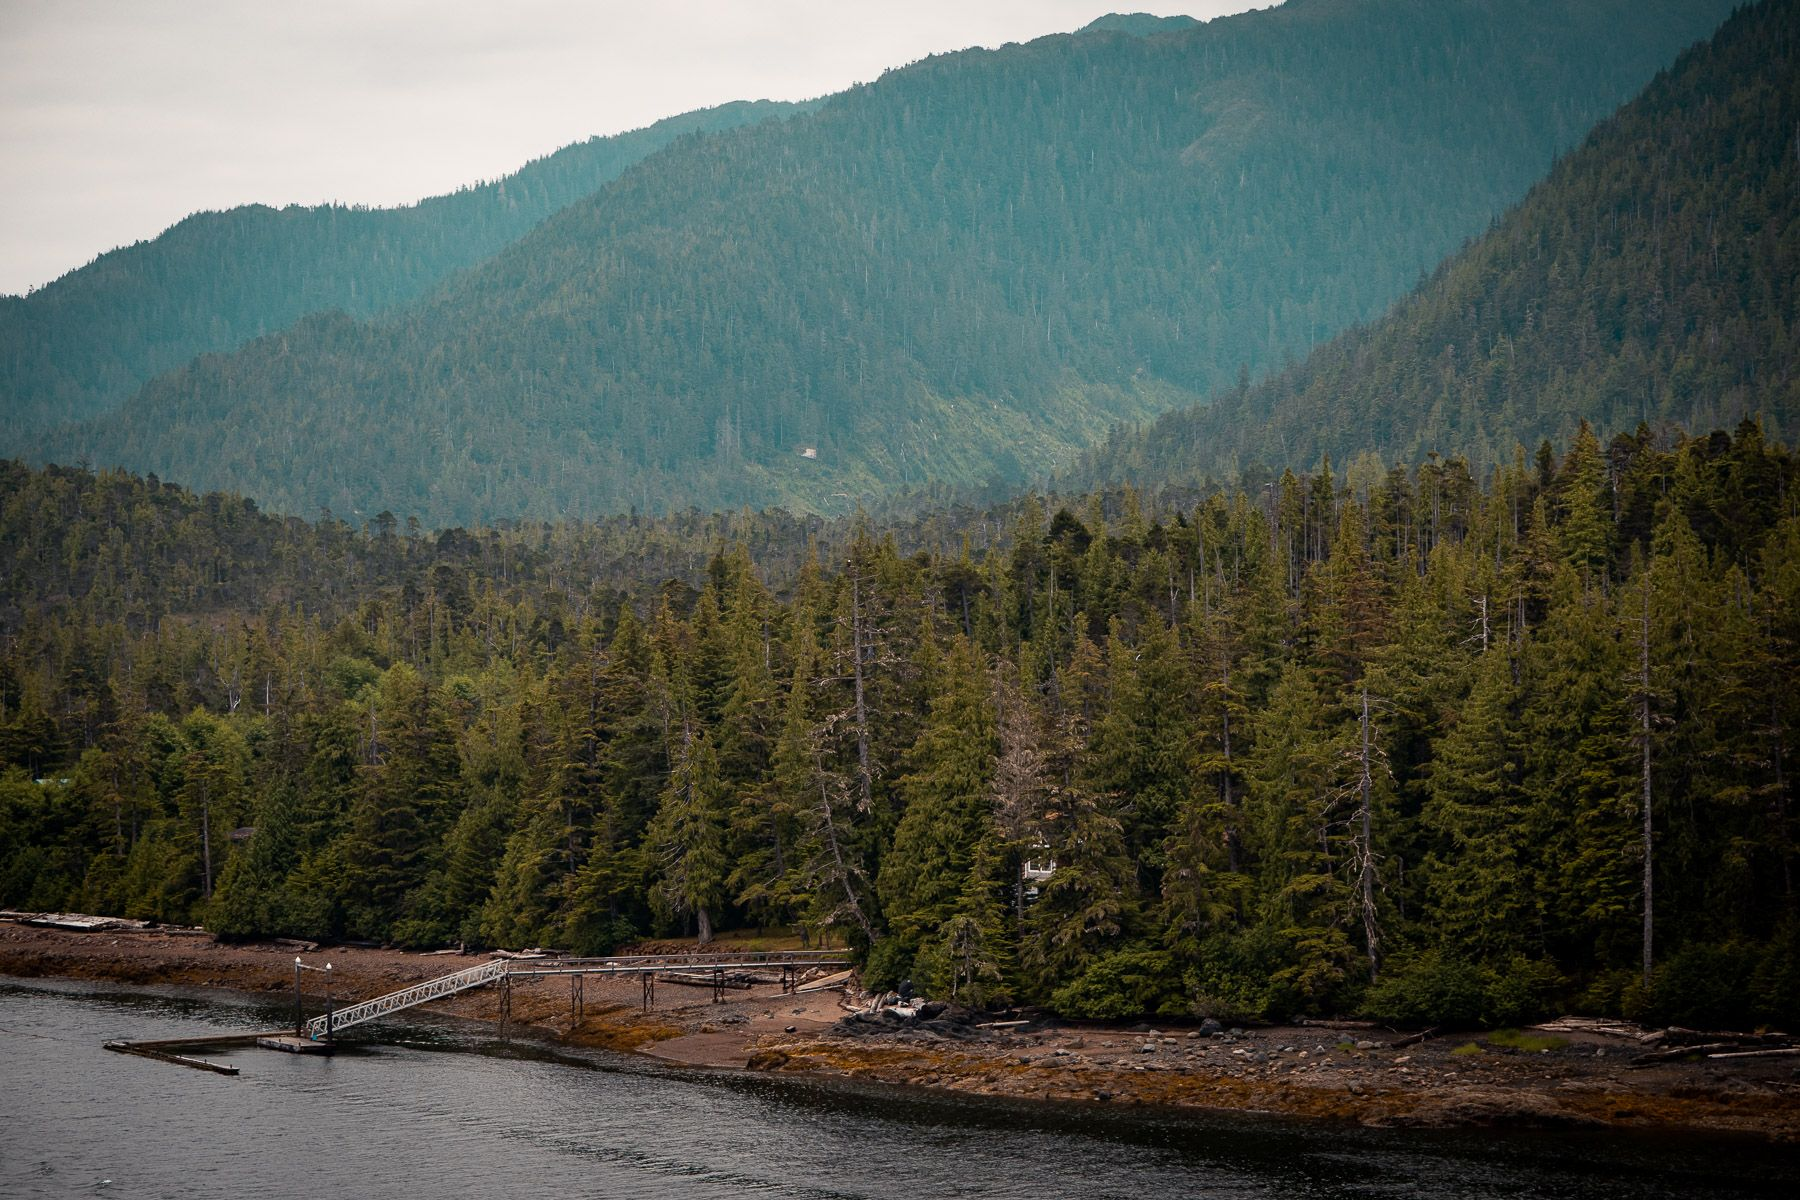 Houses along the shore of the Tongass Narrows near